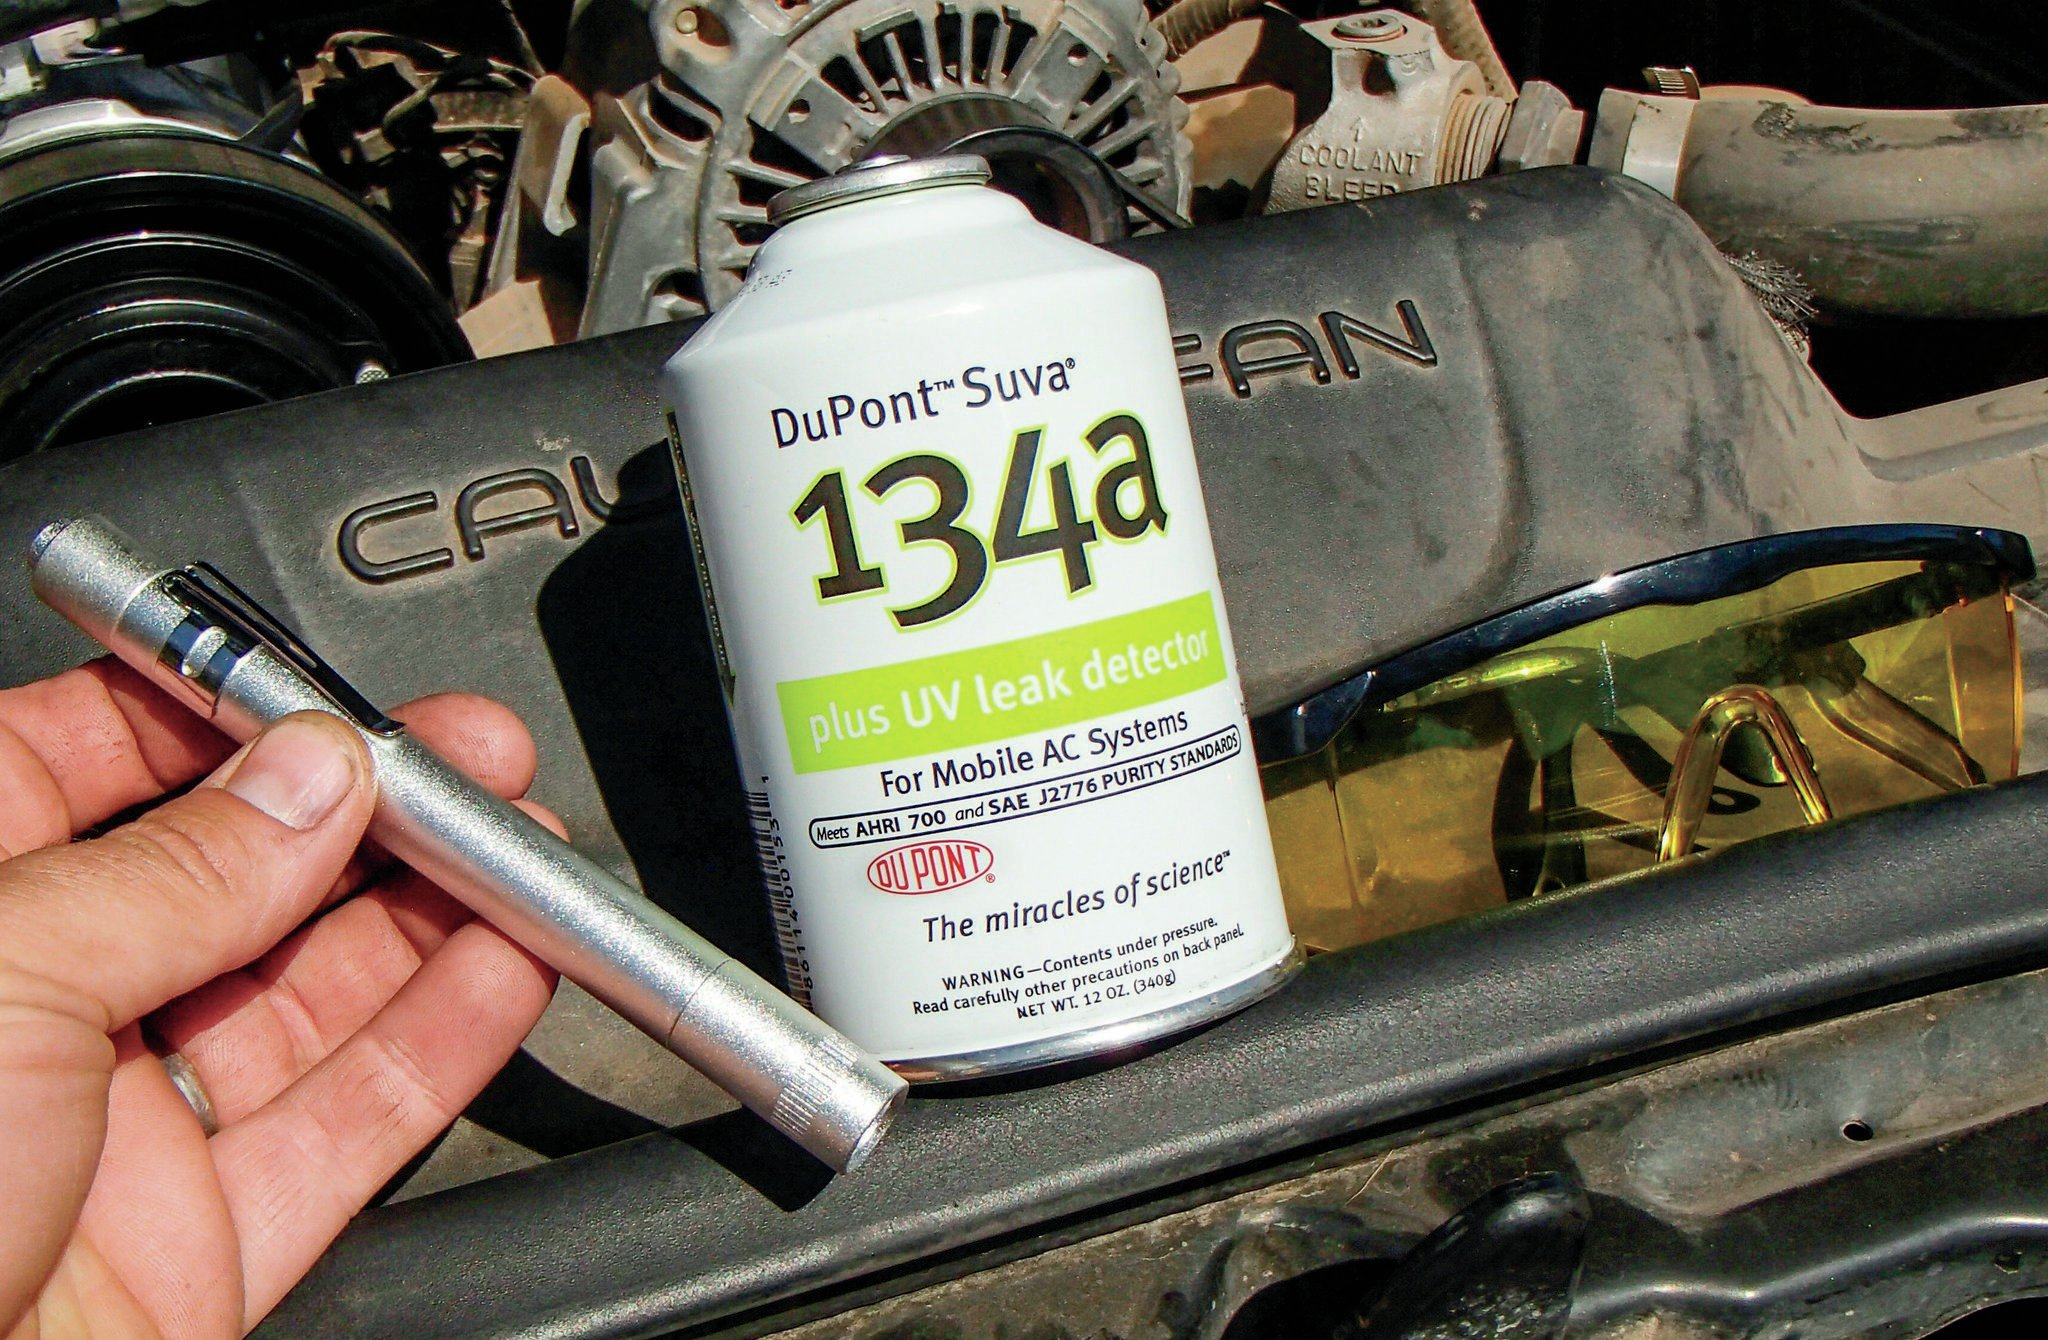 If your once fully functioning A/C system slowly warms up over a few days or weeks, chances are you have a small leak somewhere in the system where the r134A is escaping. You can use soapy water and a spray bottle to look for a leak on the system, or internally add some r134A with a specially die and use this funky little light and these yellow glasses to find the leak. The dye works its way out of the leak and the light and glasses make the area where the leak is light up like Tide detergent under a black light. In theory, this will make finding the leak easy. Again, be sure to avoid any leak dye with any A/C system leak sealer mixed in.